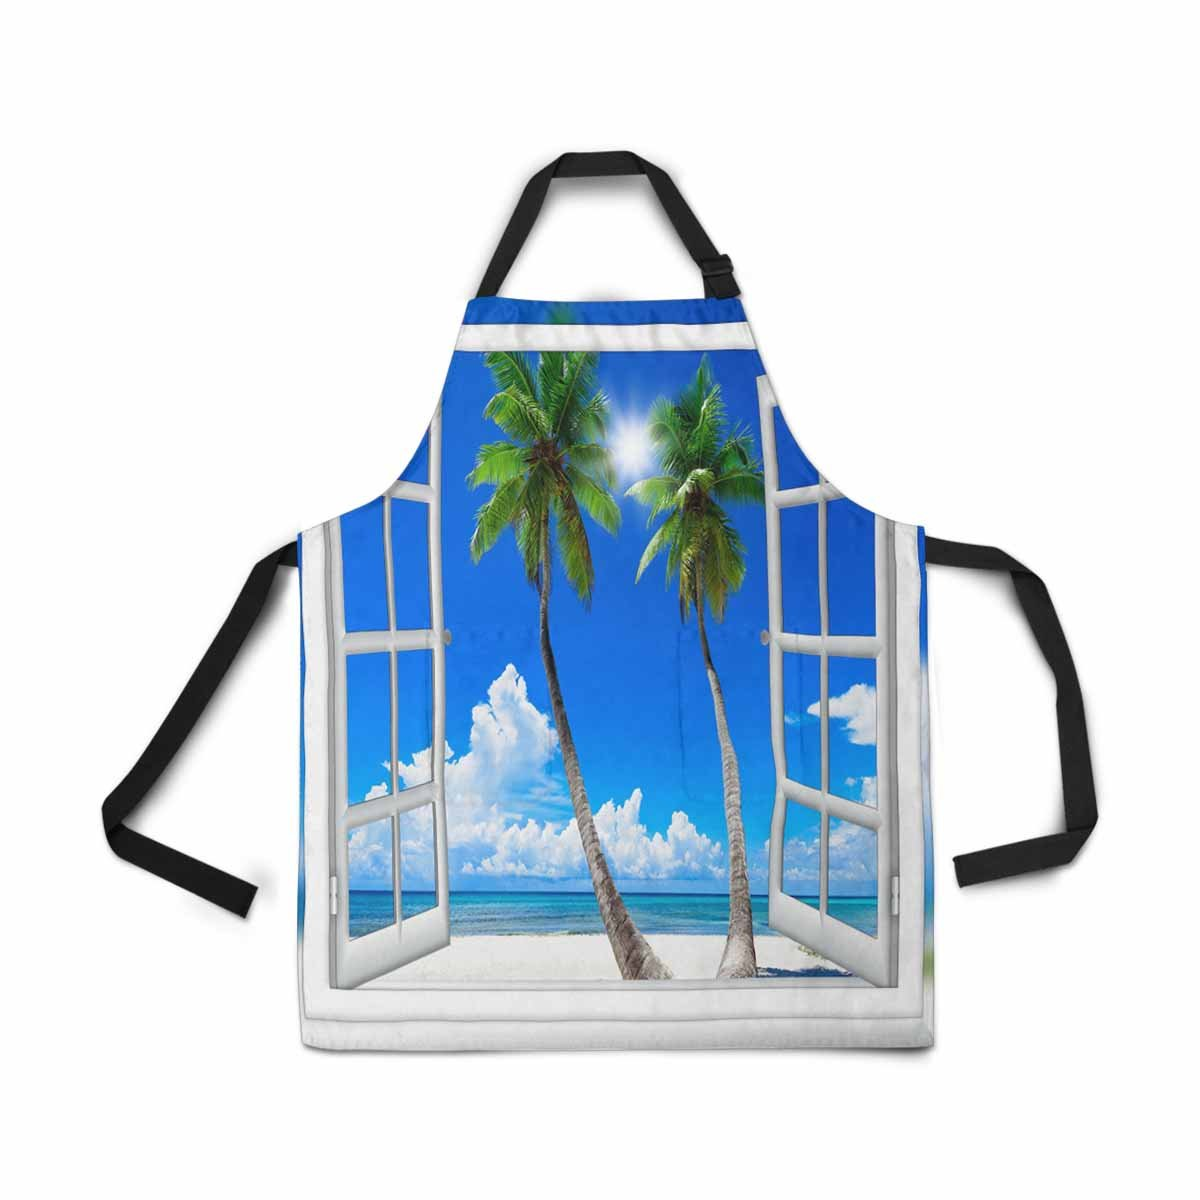 InterestPrint Adjustable Bib Apron for Women Men Girls Chef with Pockets, Summer Sunny Day Window View Sea Beach Palm Tree Novelty Kitchen Apron for Cooking Baking Gardening Pet Grooming Cleaning